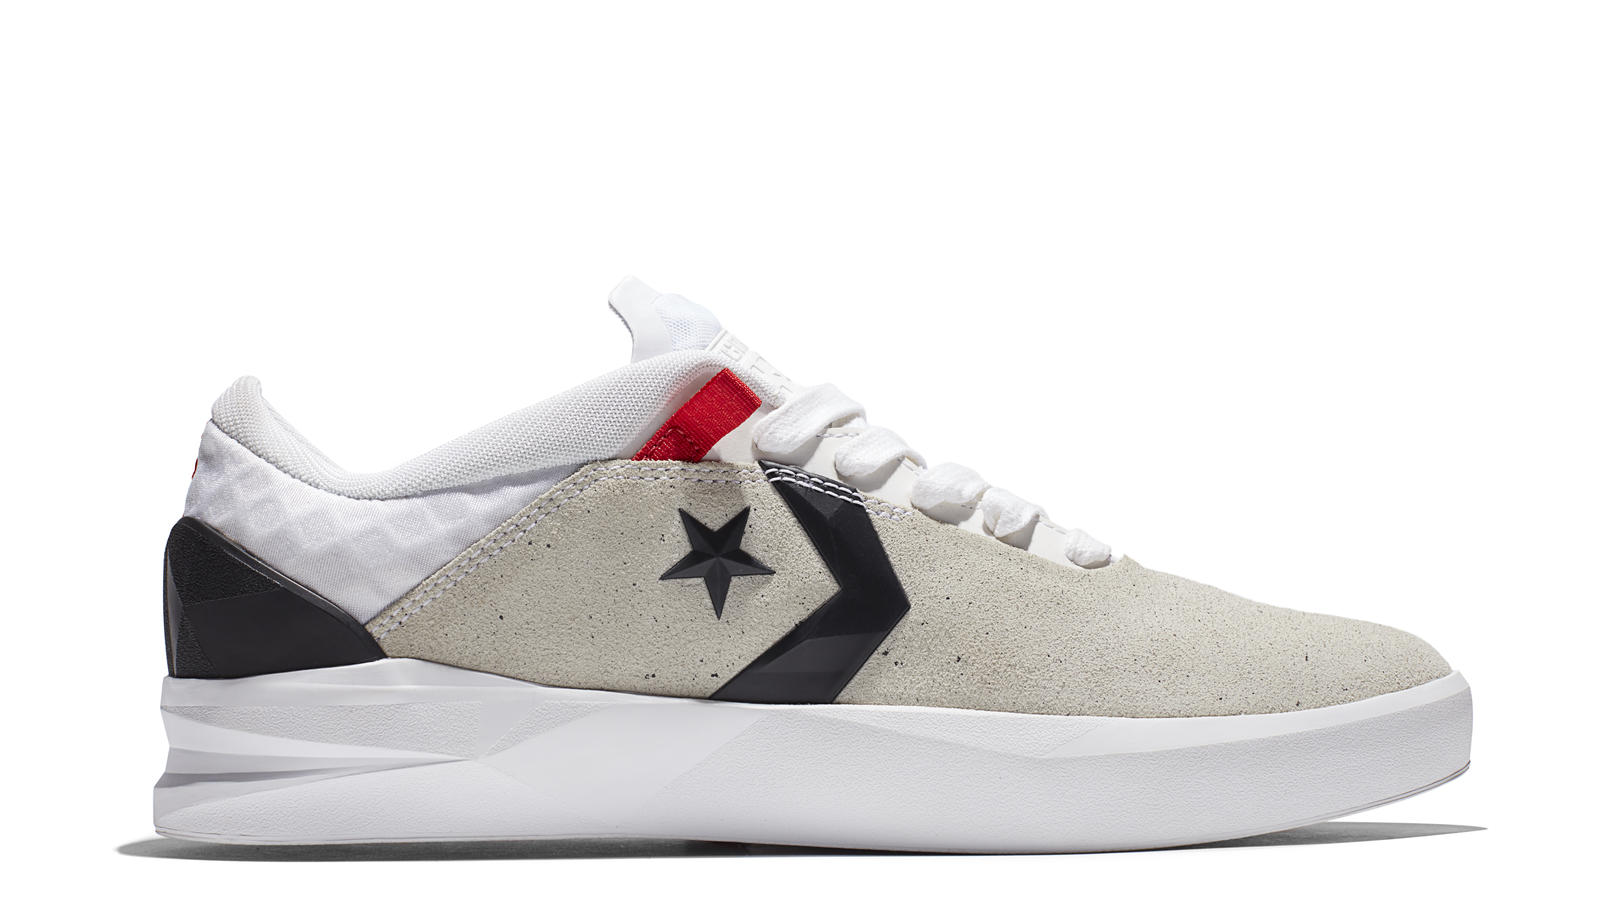 CONVERSE CONS METRIC CLS MAKES ITS DEBUT - Nike News 9a7565445f